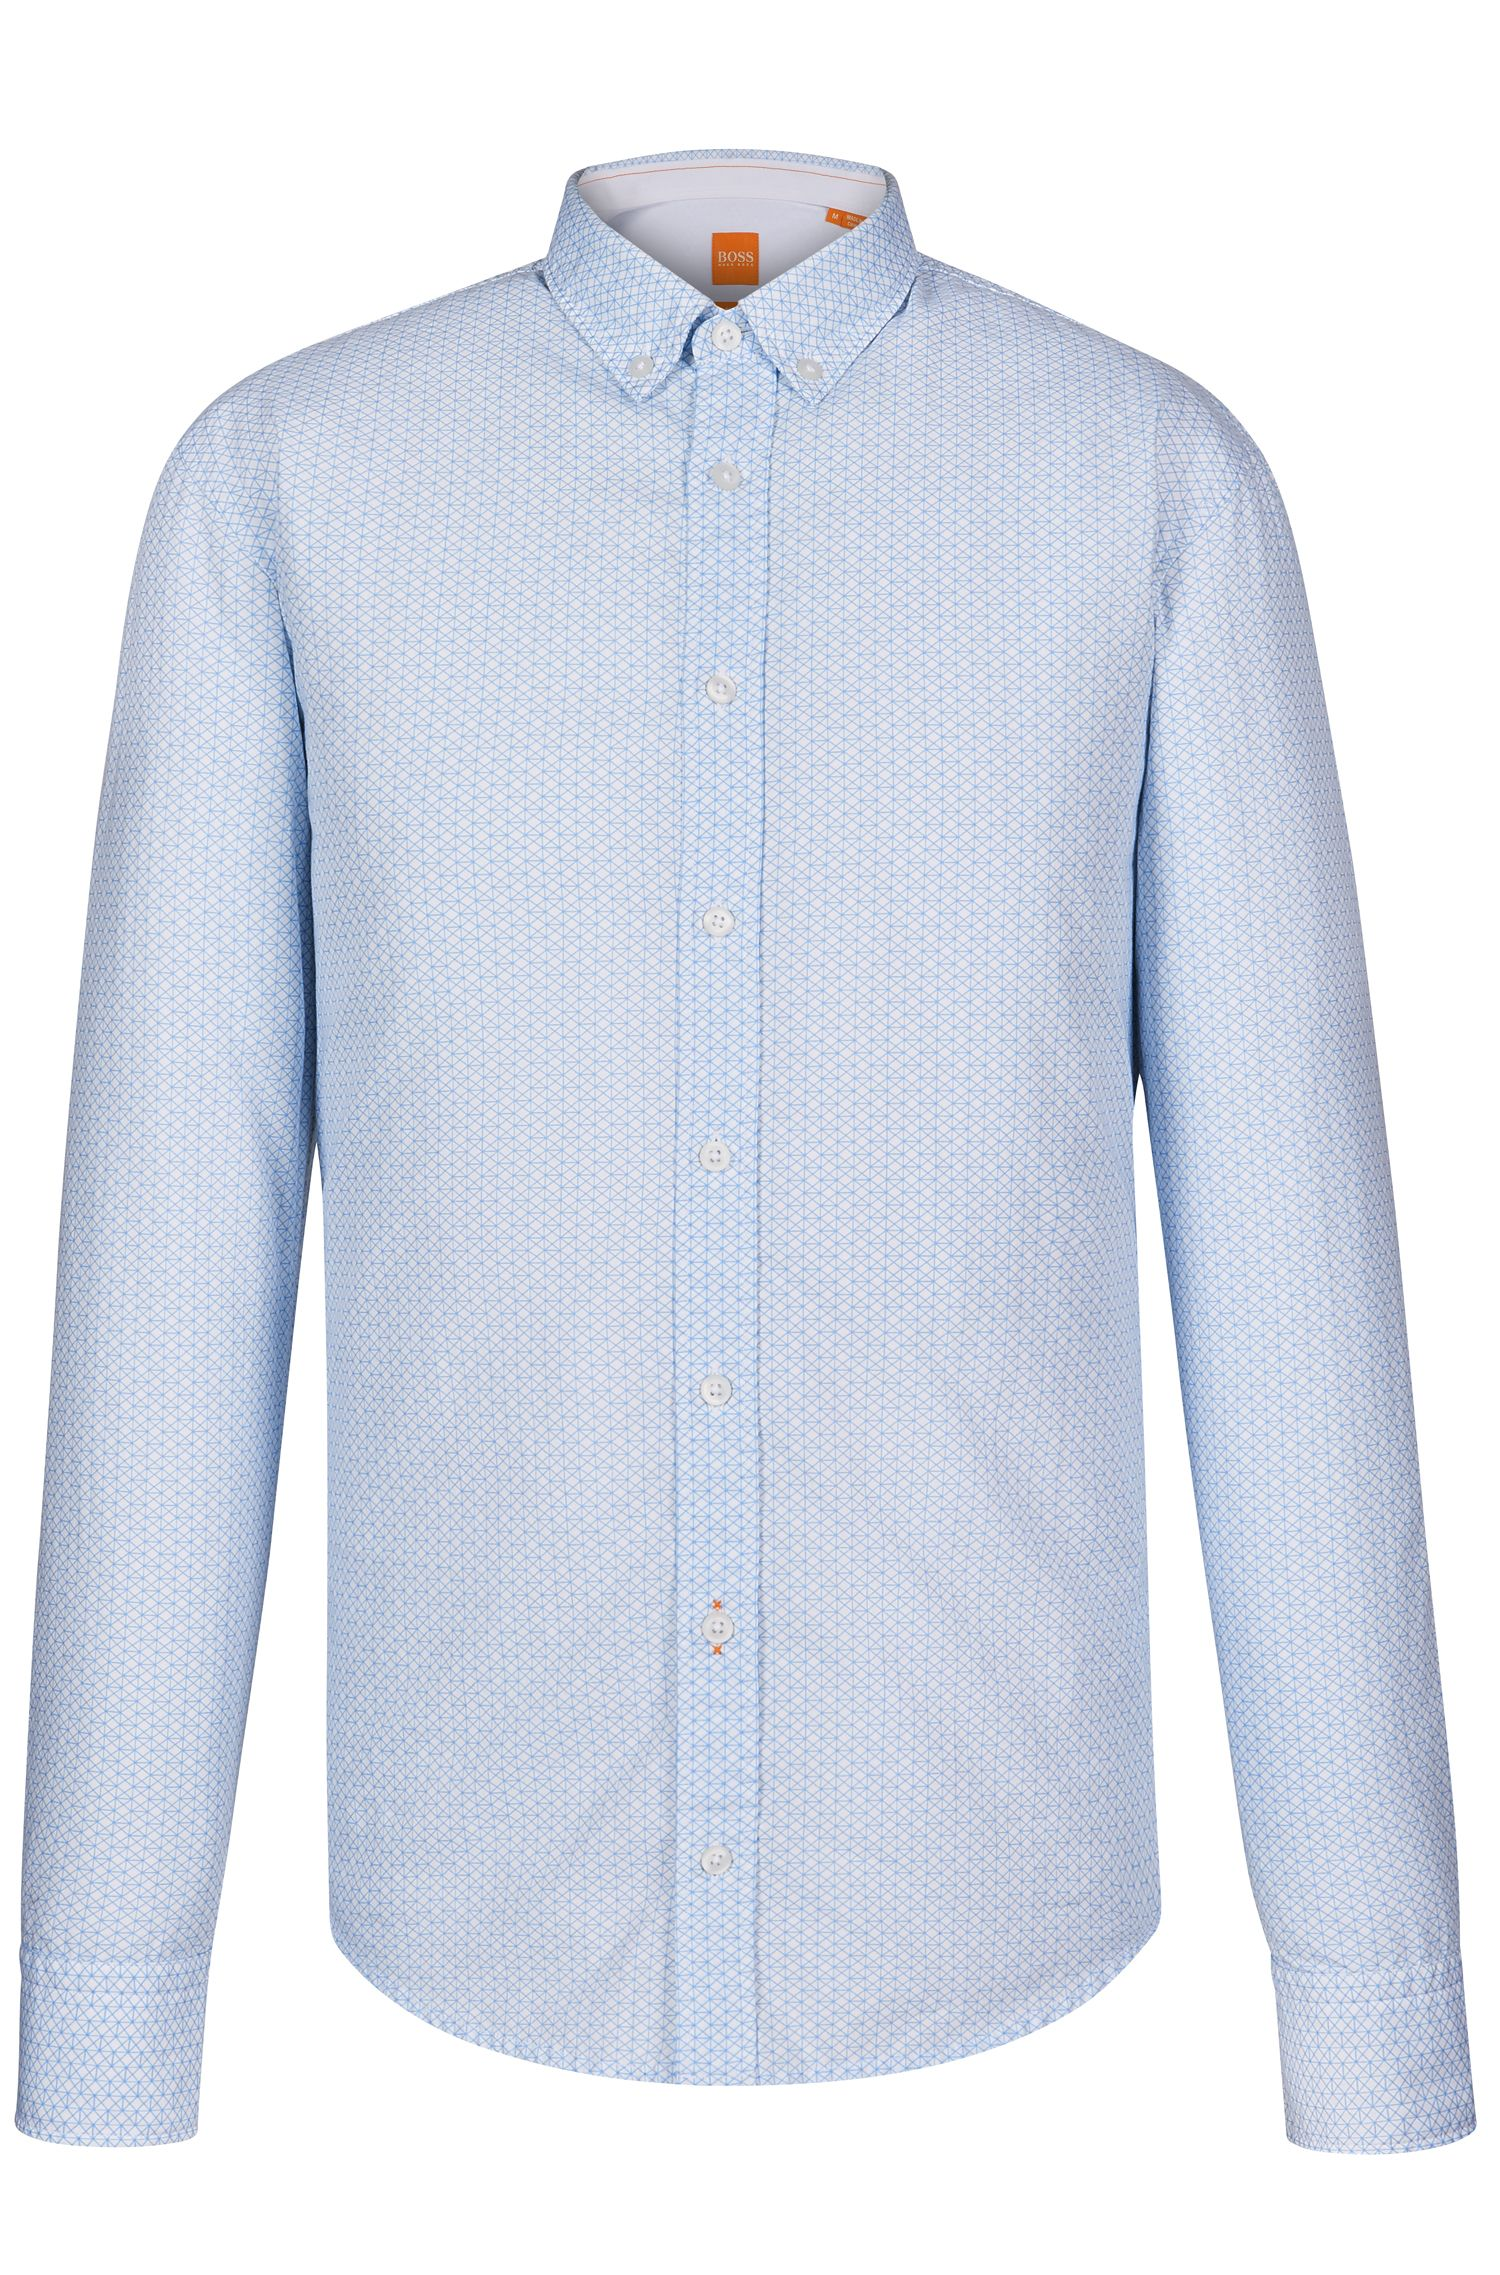 'EdipoE' | Slim Fit, Cotton Button Down Shirt